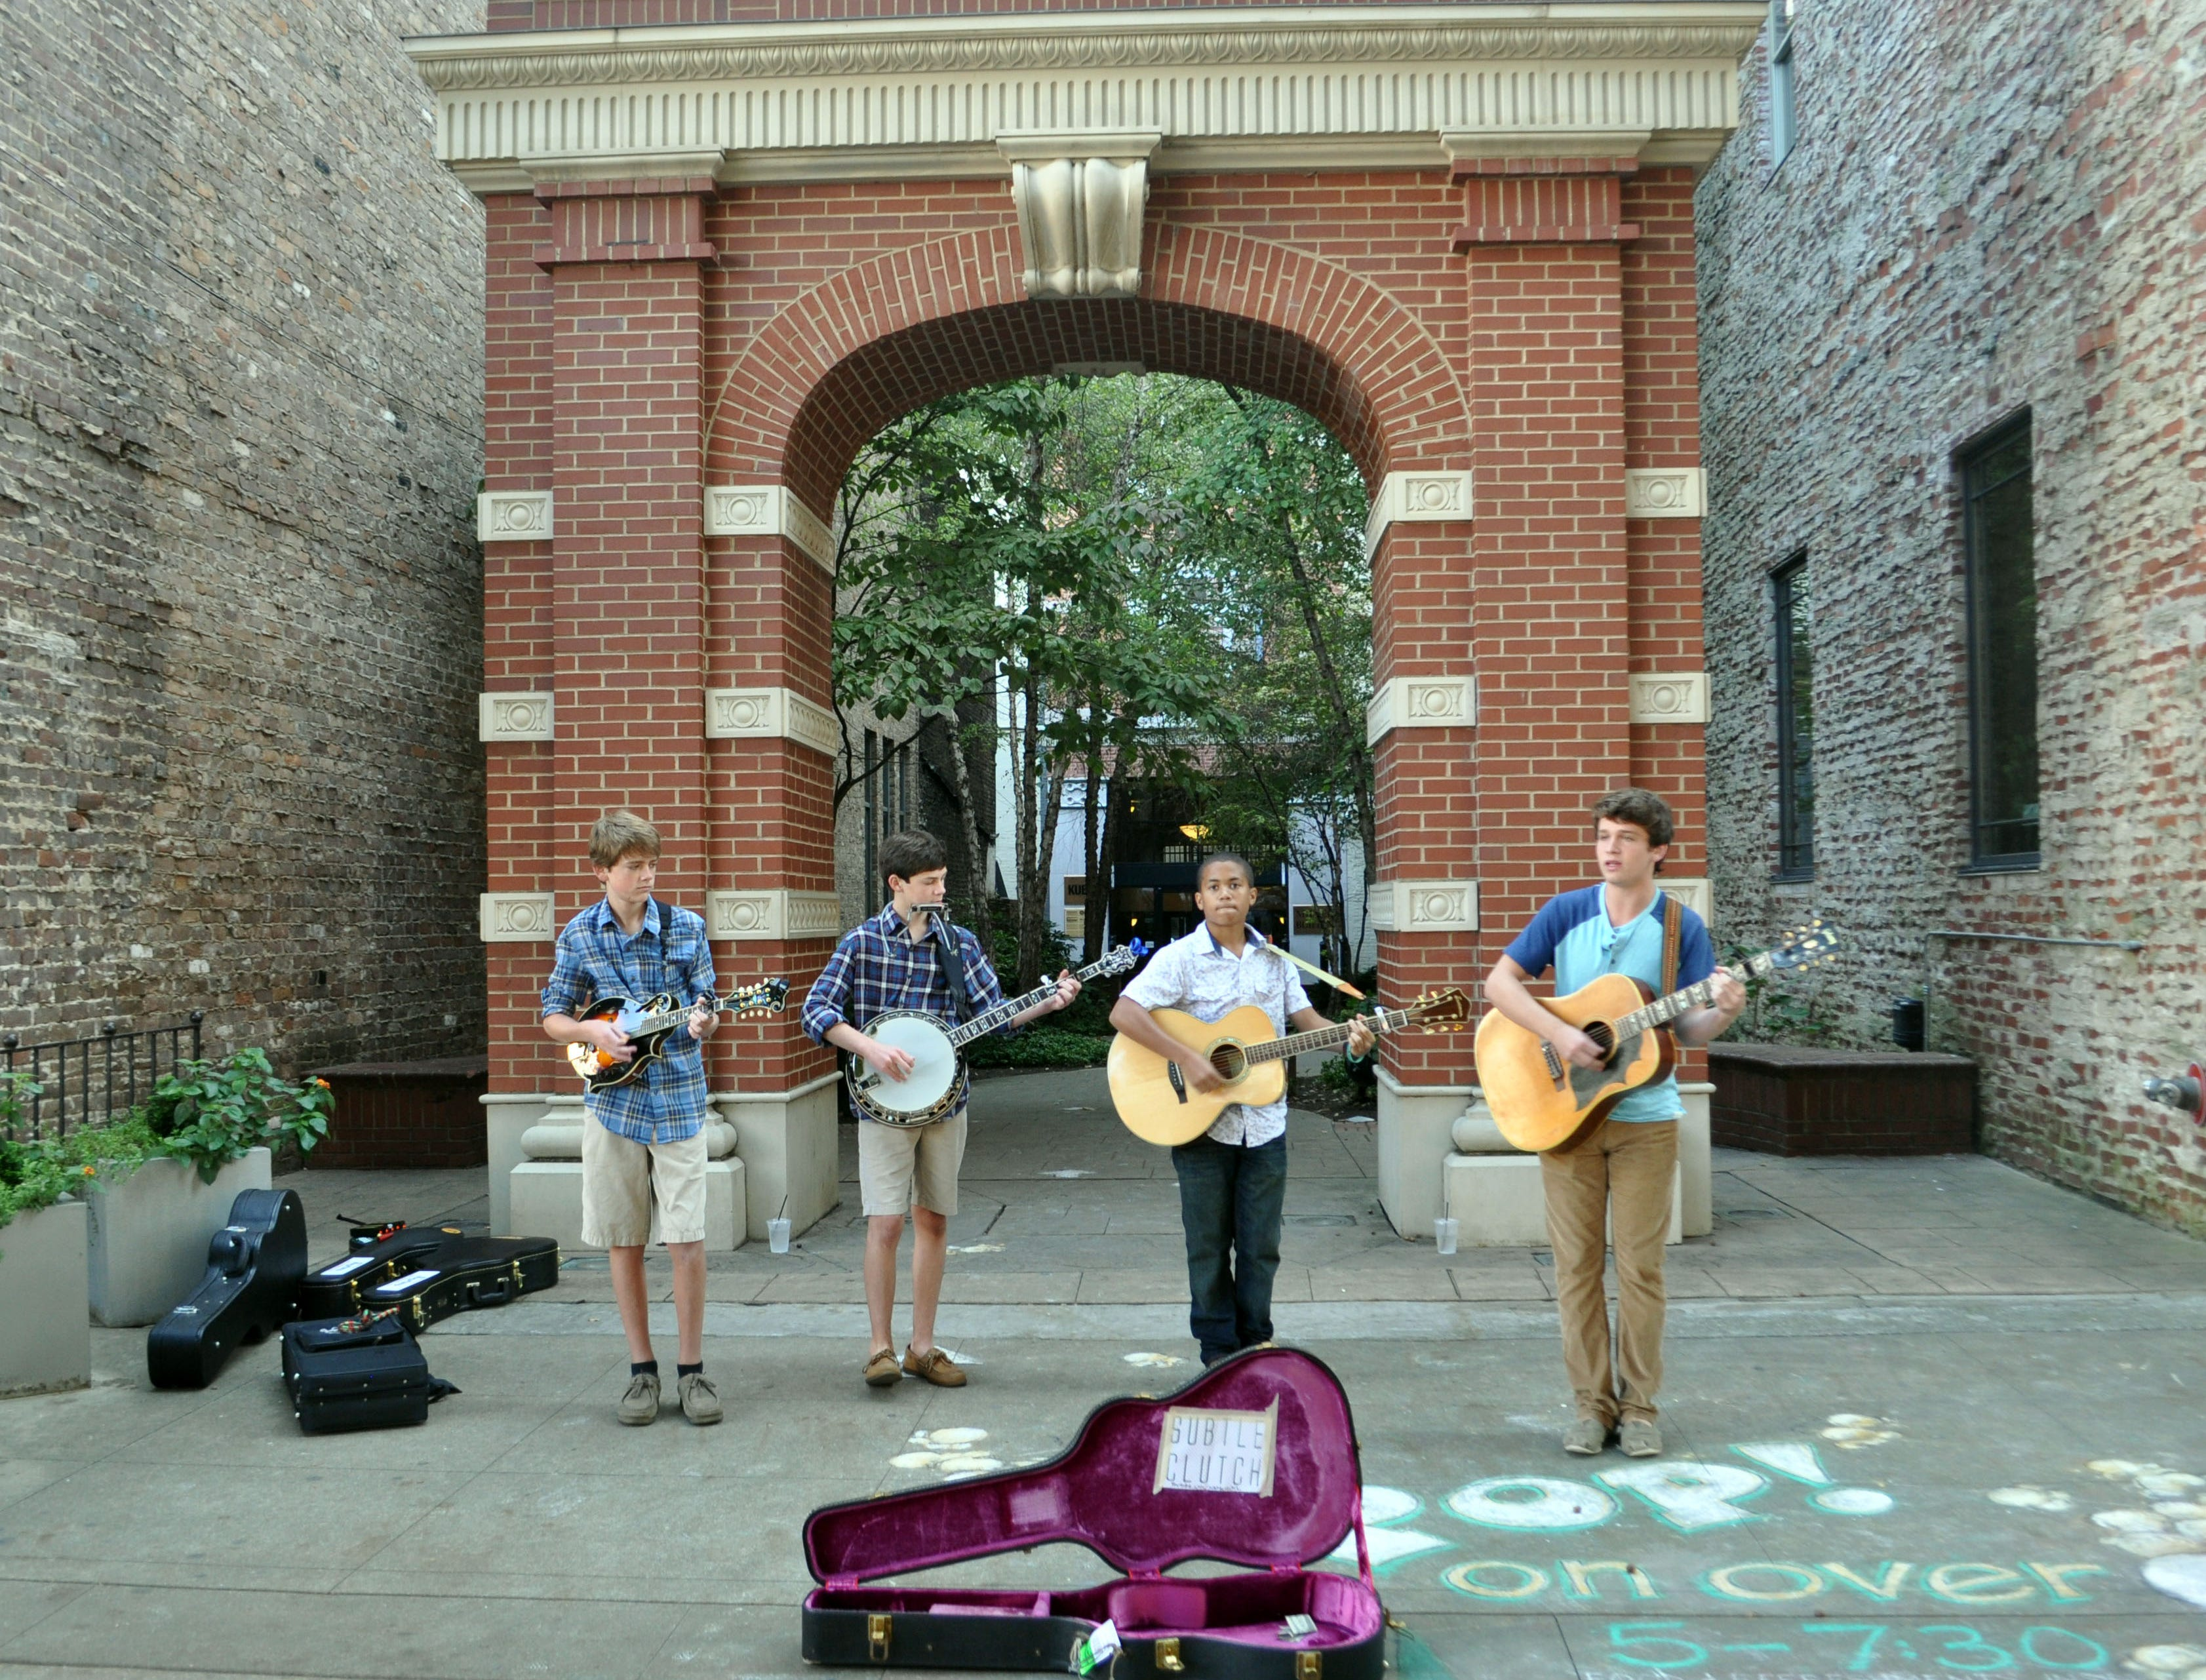 From left, Subtle Clutch members Jonathan Bailey, Eli Fox, Devin Badgett and Briston Maroney perform in Market Square. The group first took to the Square stage in June of last year and play there as often as their schedules allow.